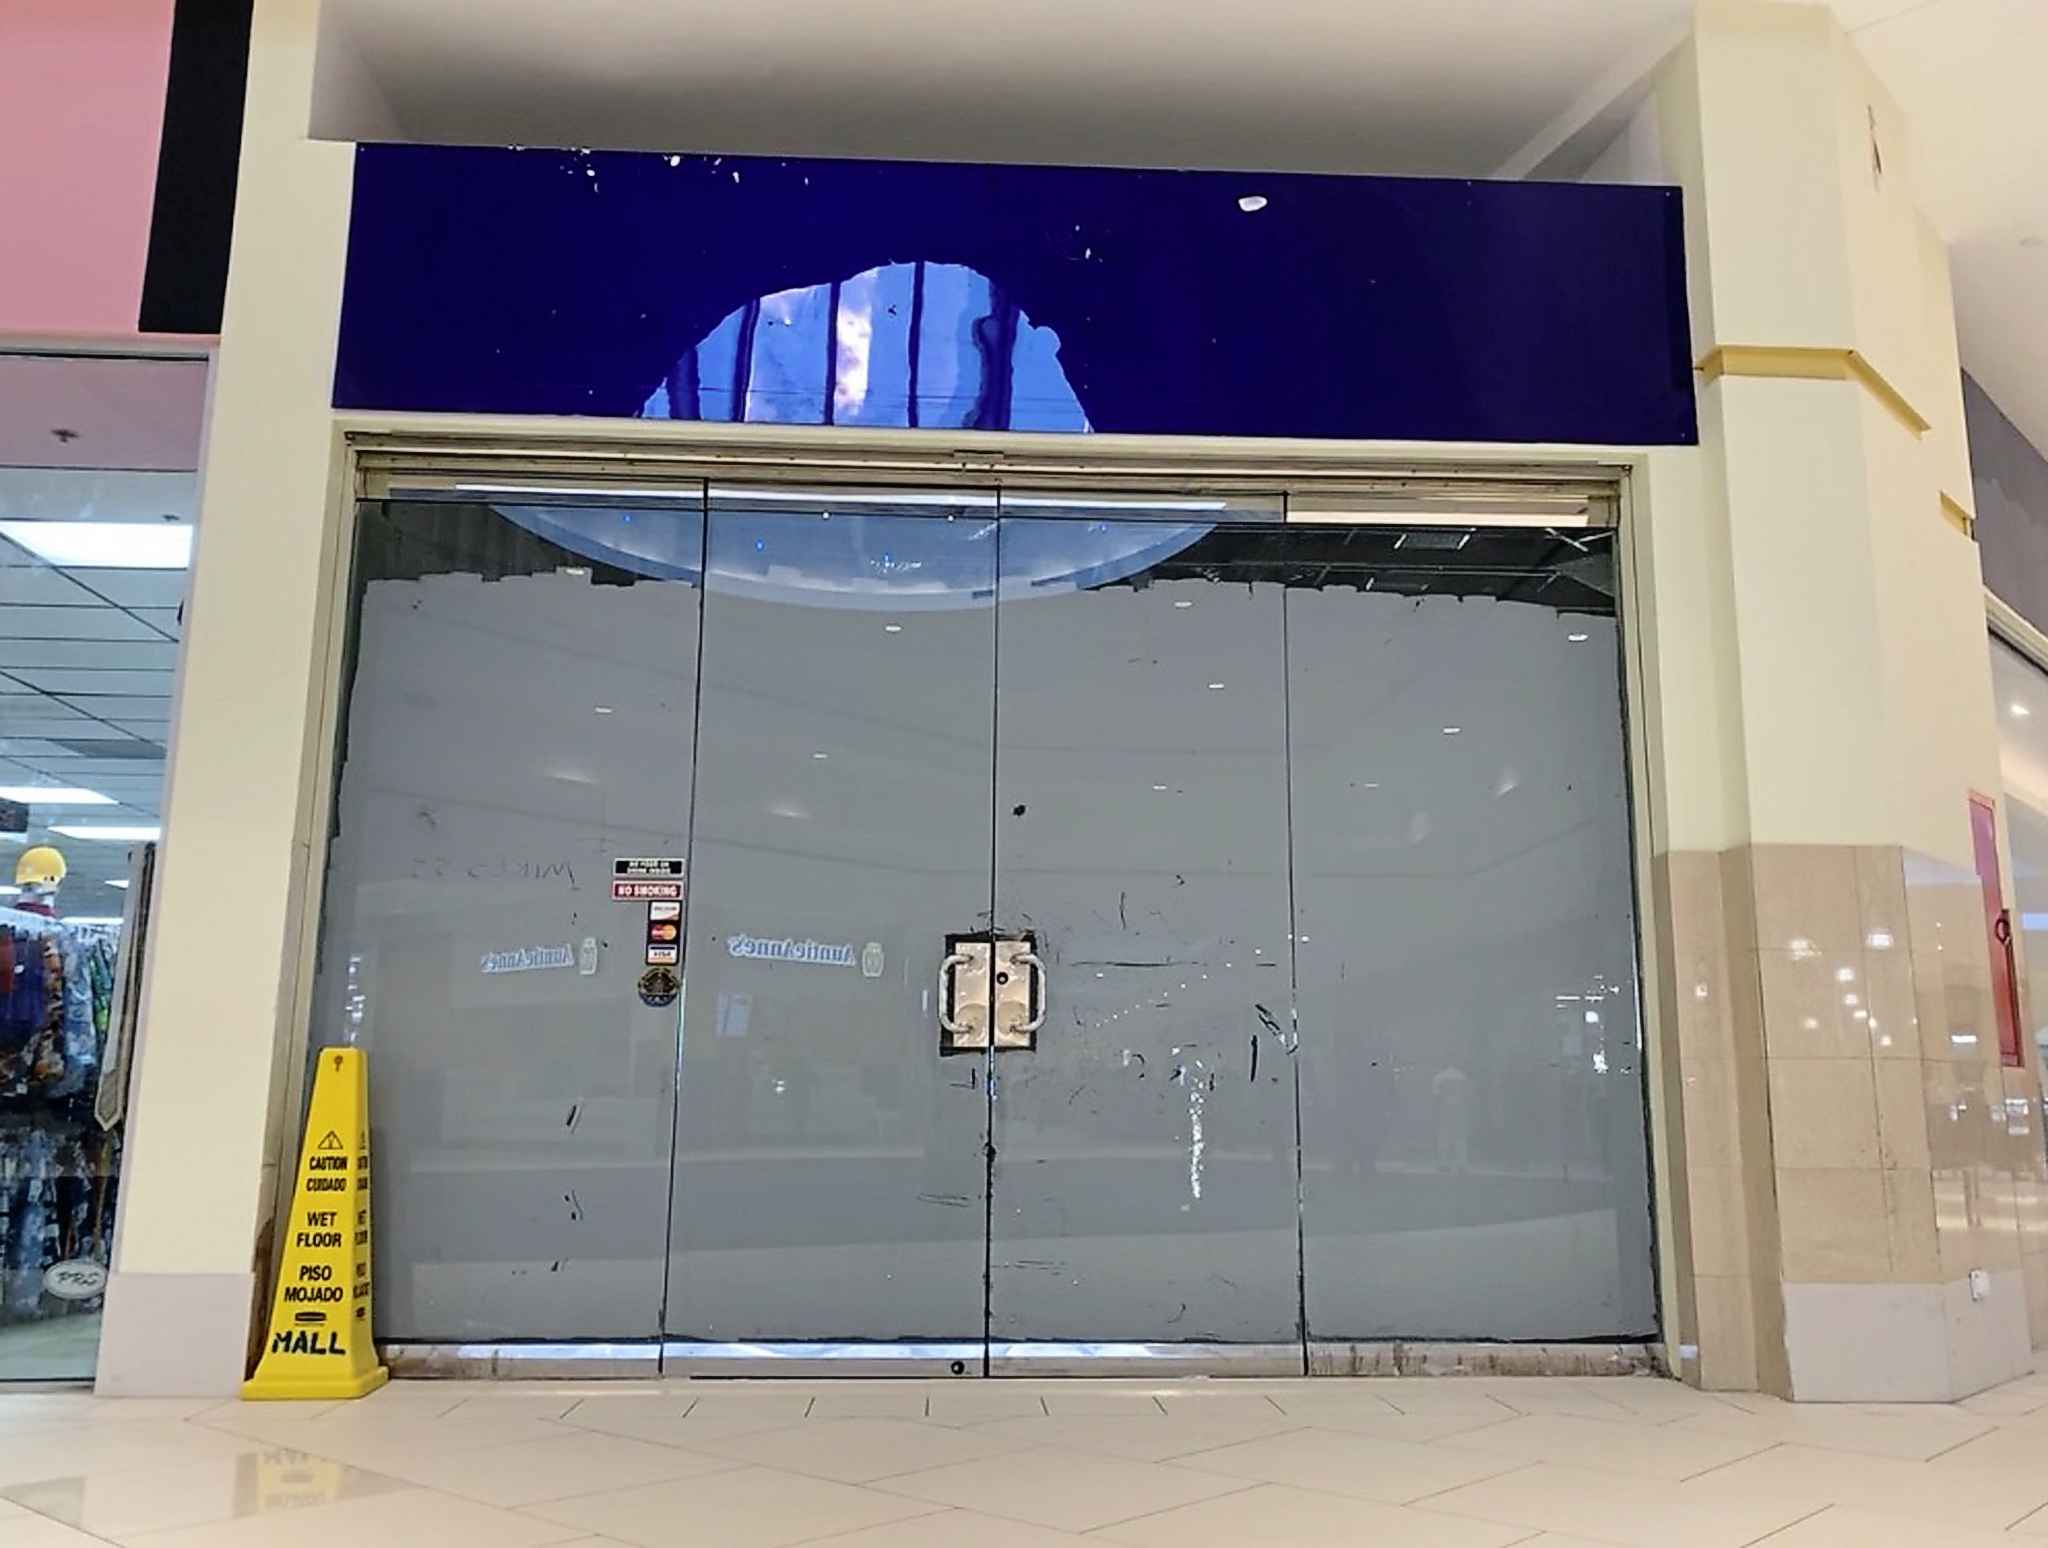 The former location of the Nygard store in the Mall at Marathon in Nassau, Bahamas which closed in 2019.